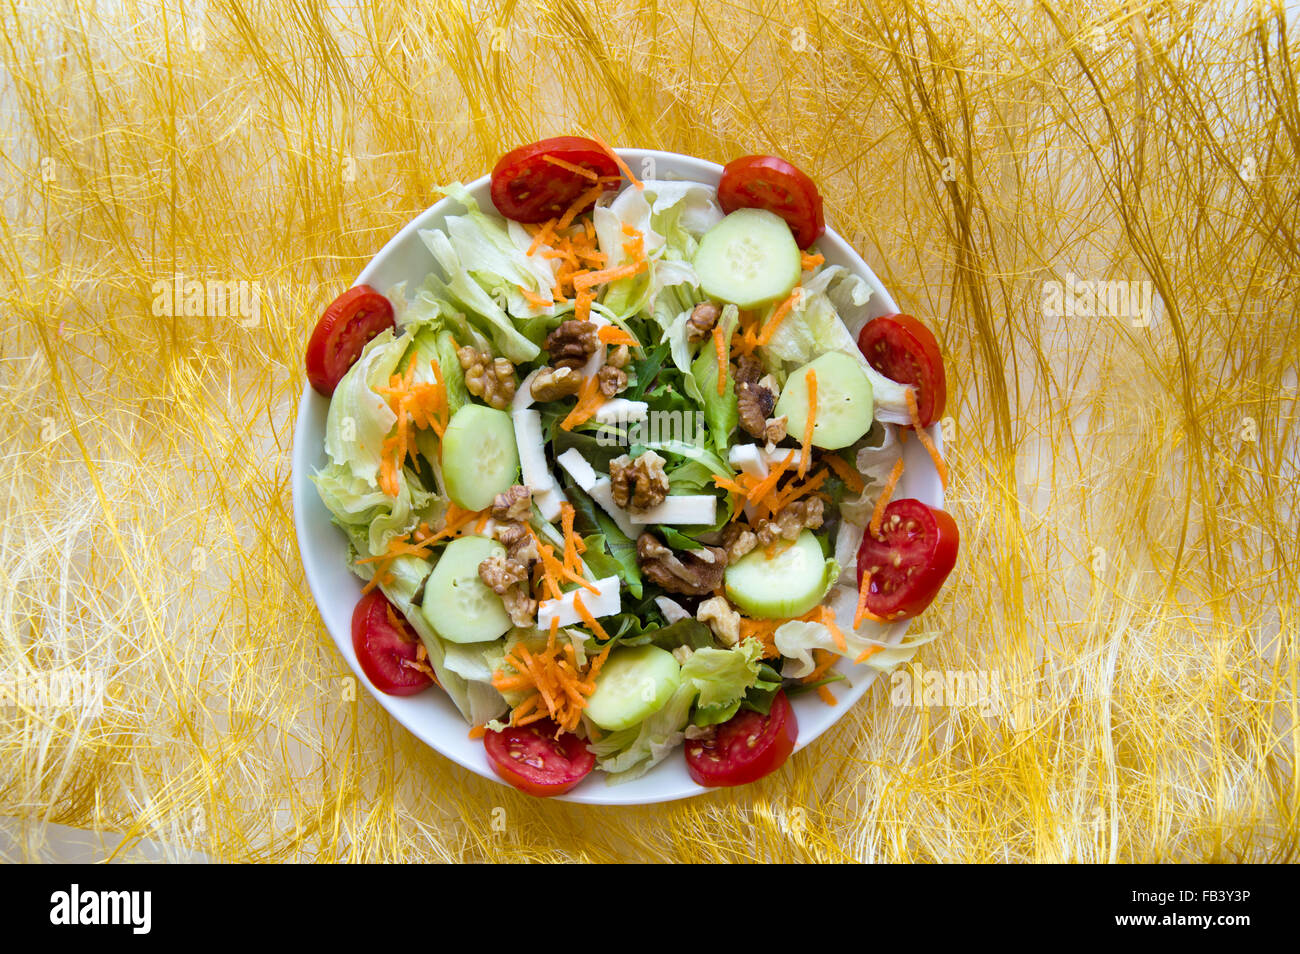 Particular of mix salad with cucumbers, walnuts, tomatoes, carrots, lettuce and feta - Stock Image